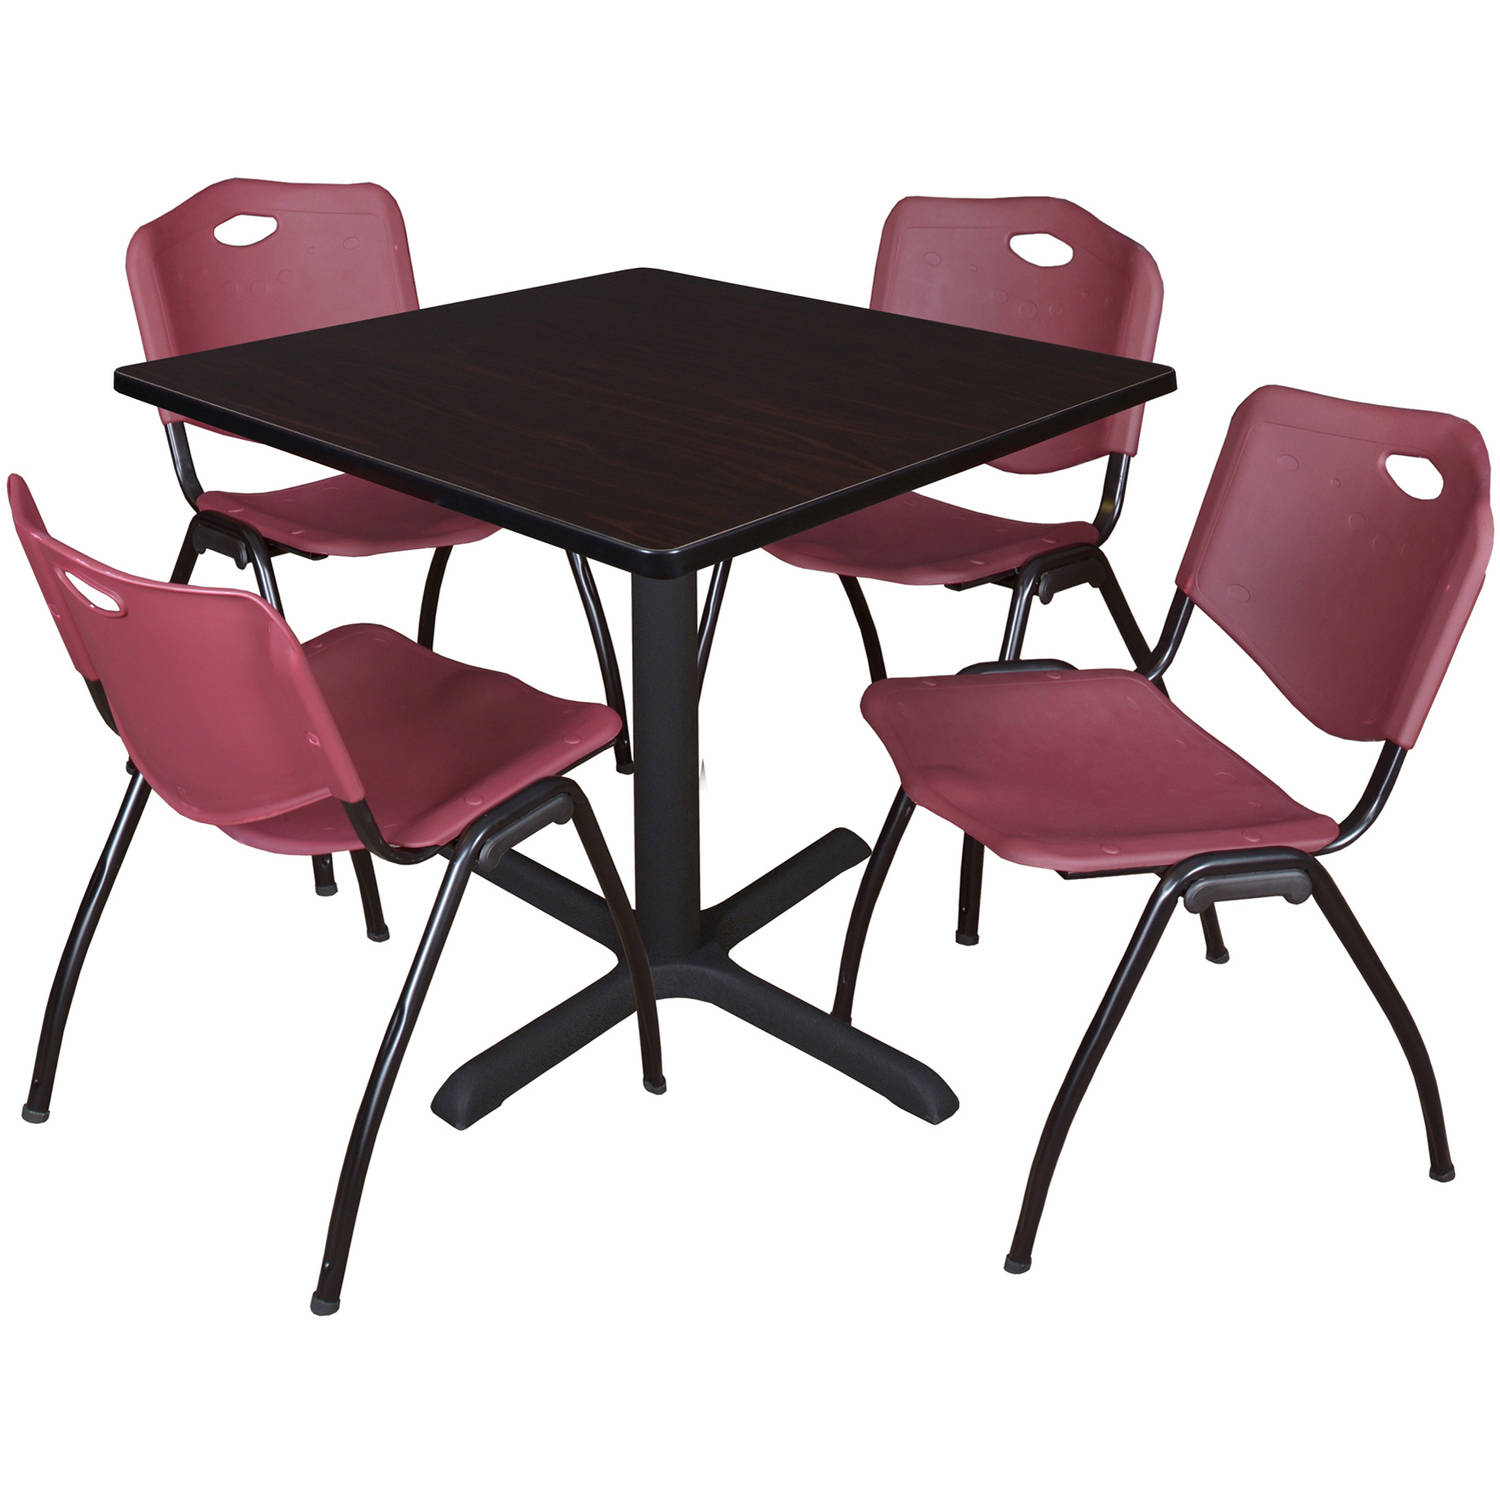 "Cain 42"" Mocha Walnut Square Breakroom Table and 4 'M' Stack Chairs, Multiple Colors"